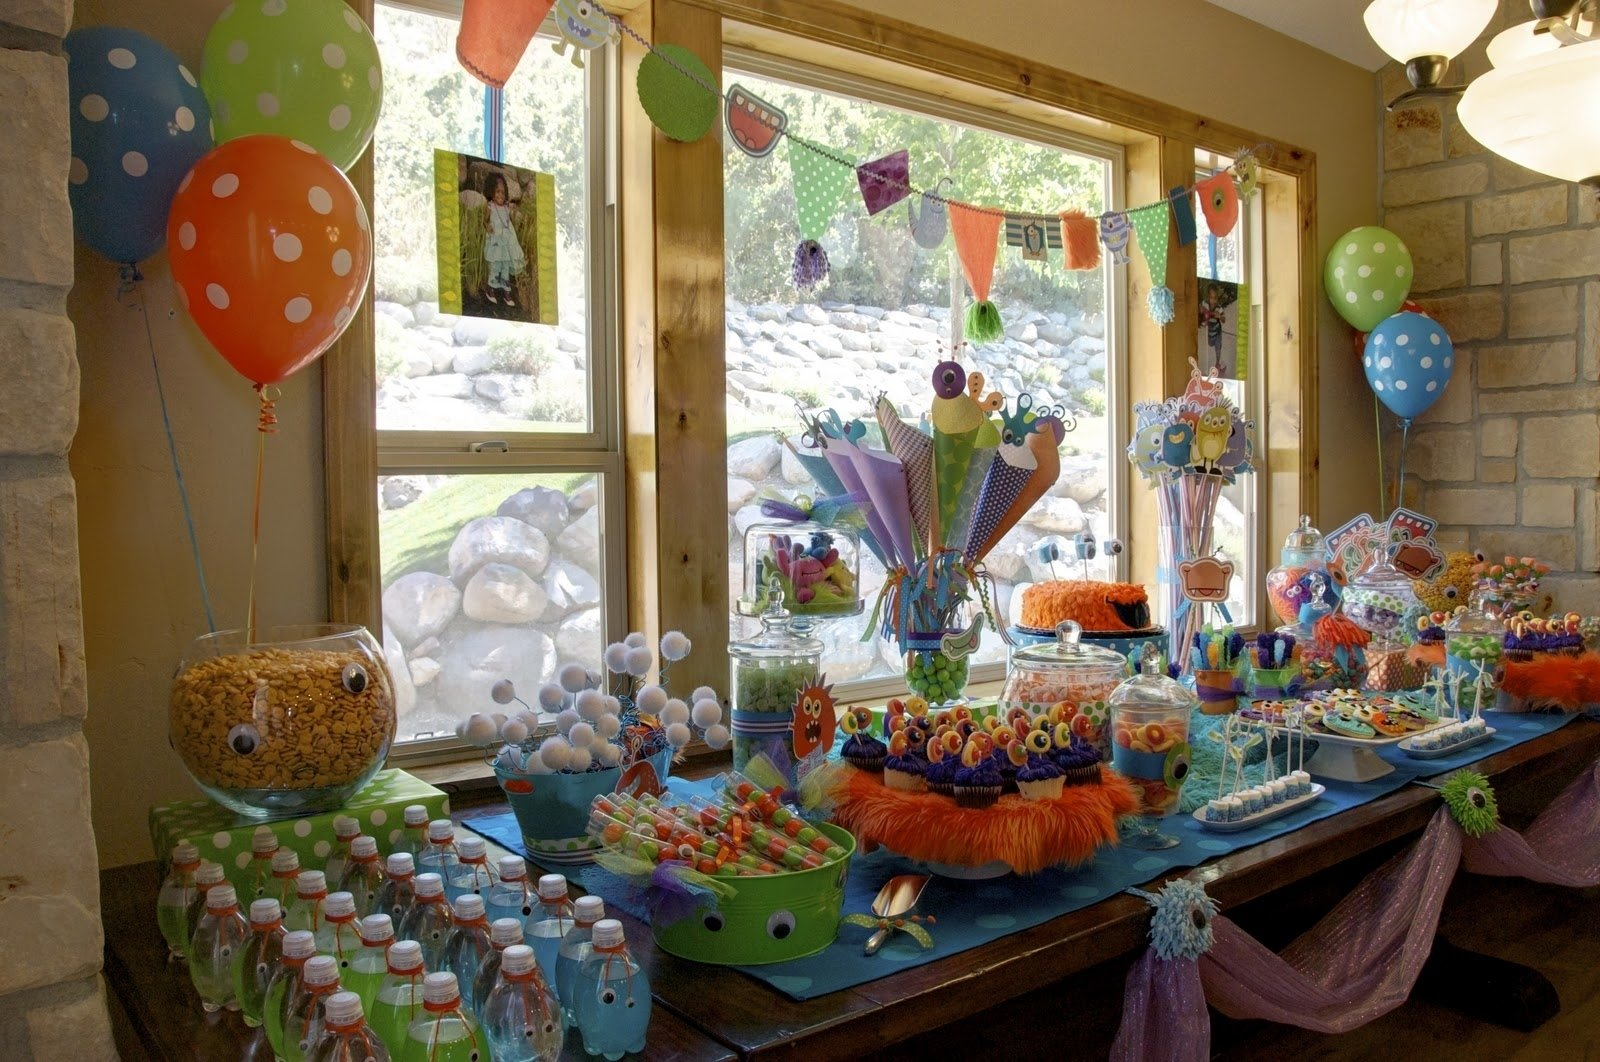 10 Stylish Birthday Party Ideas For A 3 Year Old 2019